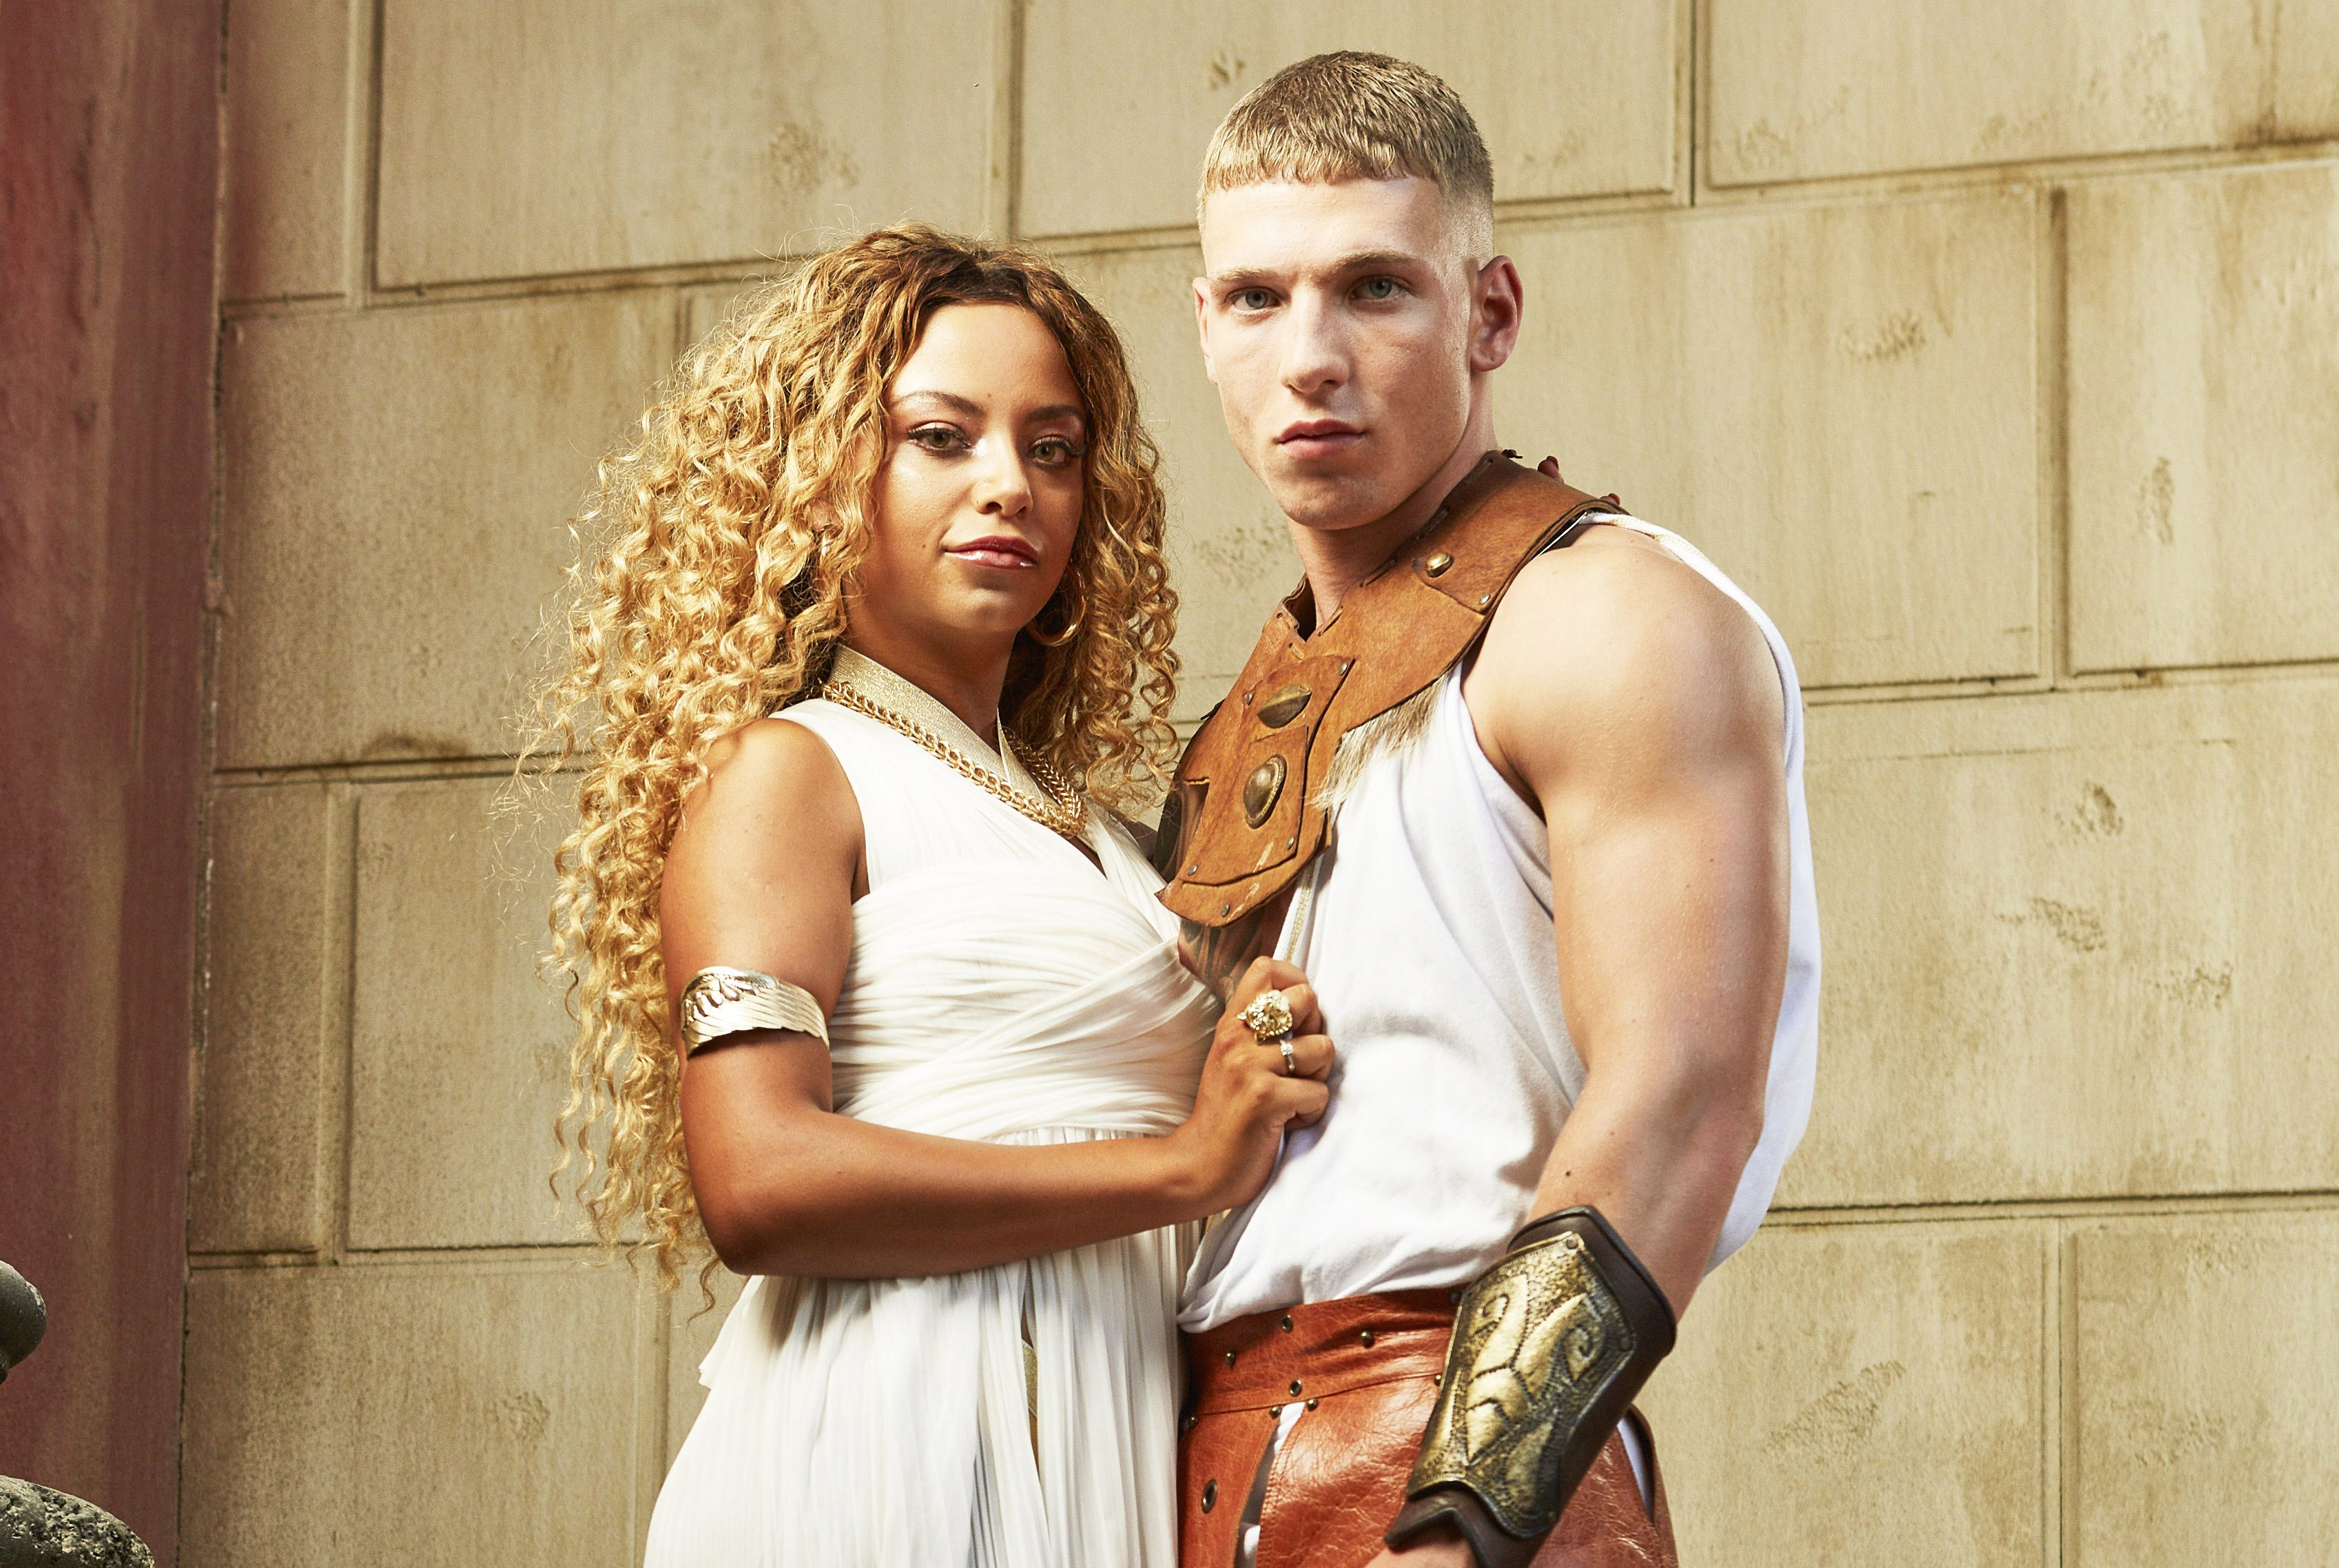 Meet the Bromans couples: Brandon and Nicola first met on Snapchat